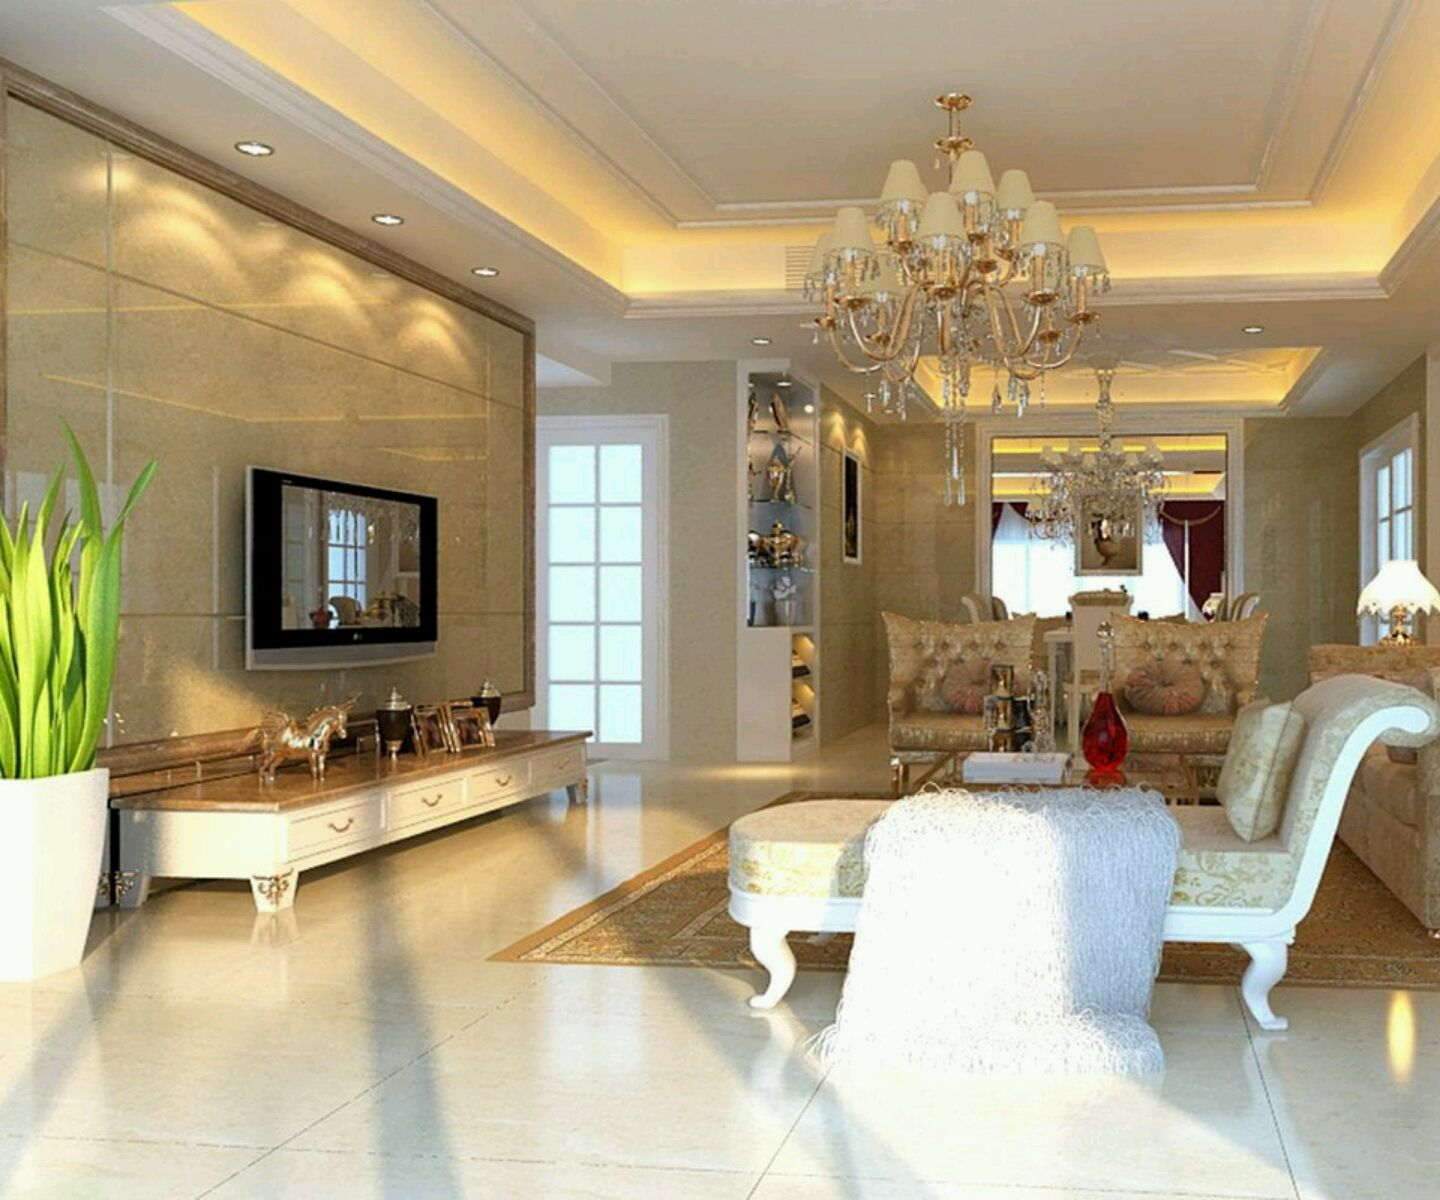 Cozy Luxury Homes Interior Gallery: Luxury Homes Interior Decoration Living Room Designs Ideas